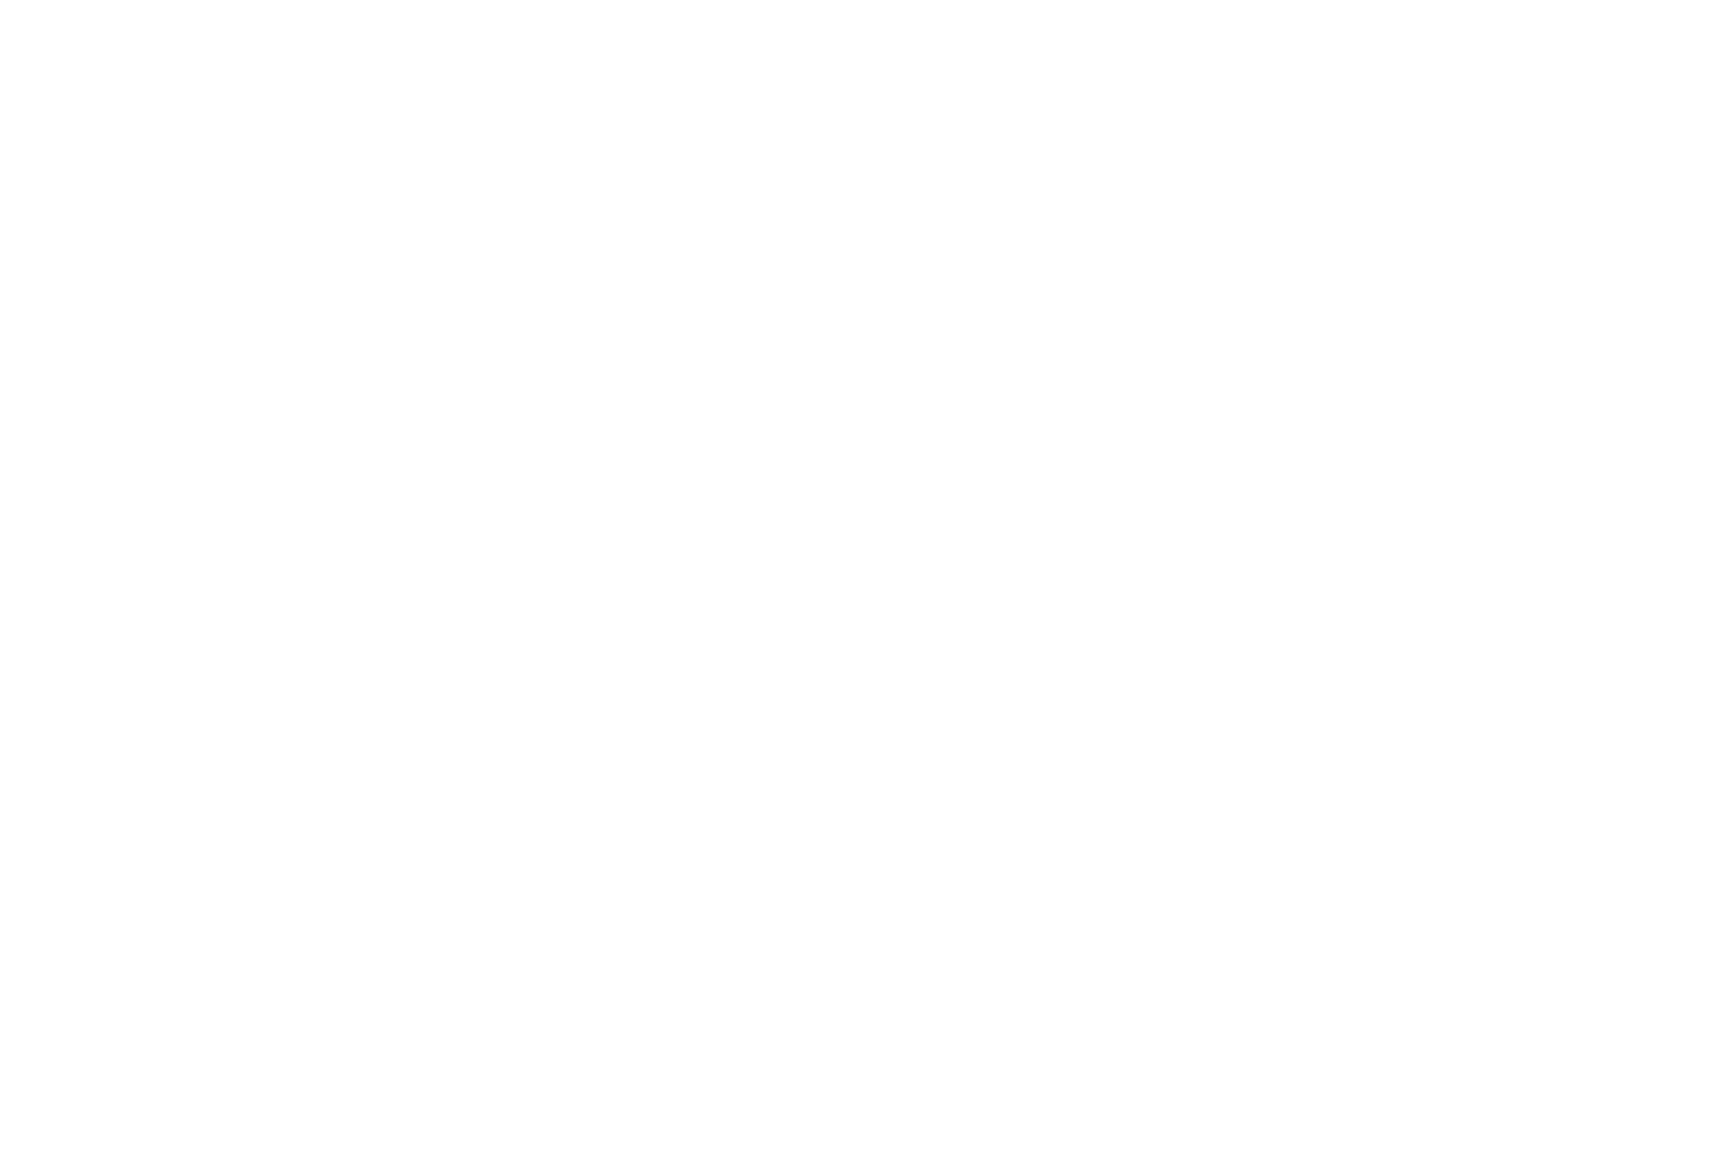 OFFICIAL-SELECTION-BEST-POSTER-Action-on-Film-MegaFest-16th17th-Annual-Film-Festival-and-Writers-Competition-20202021-2021